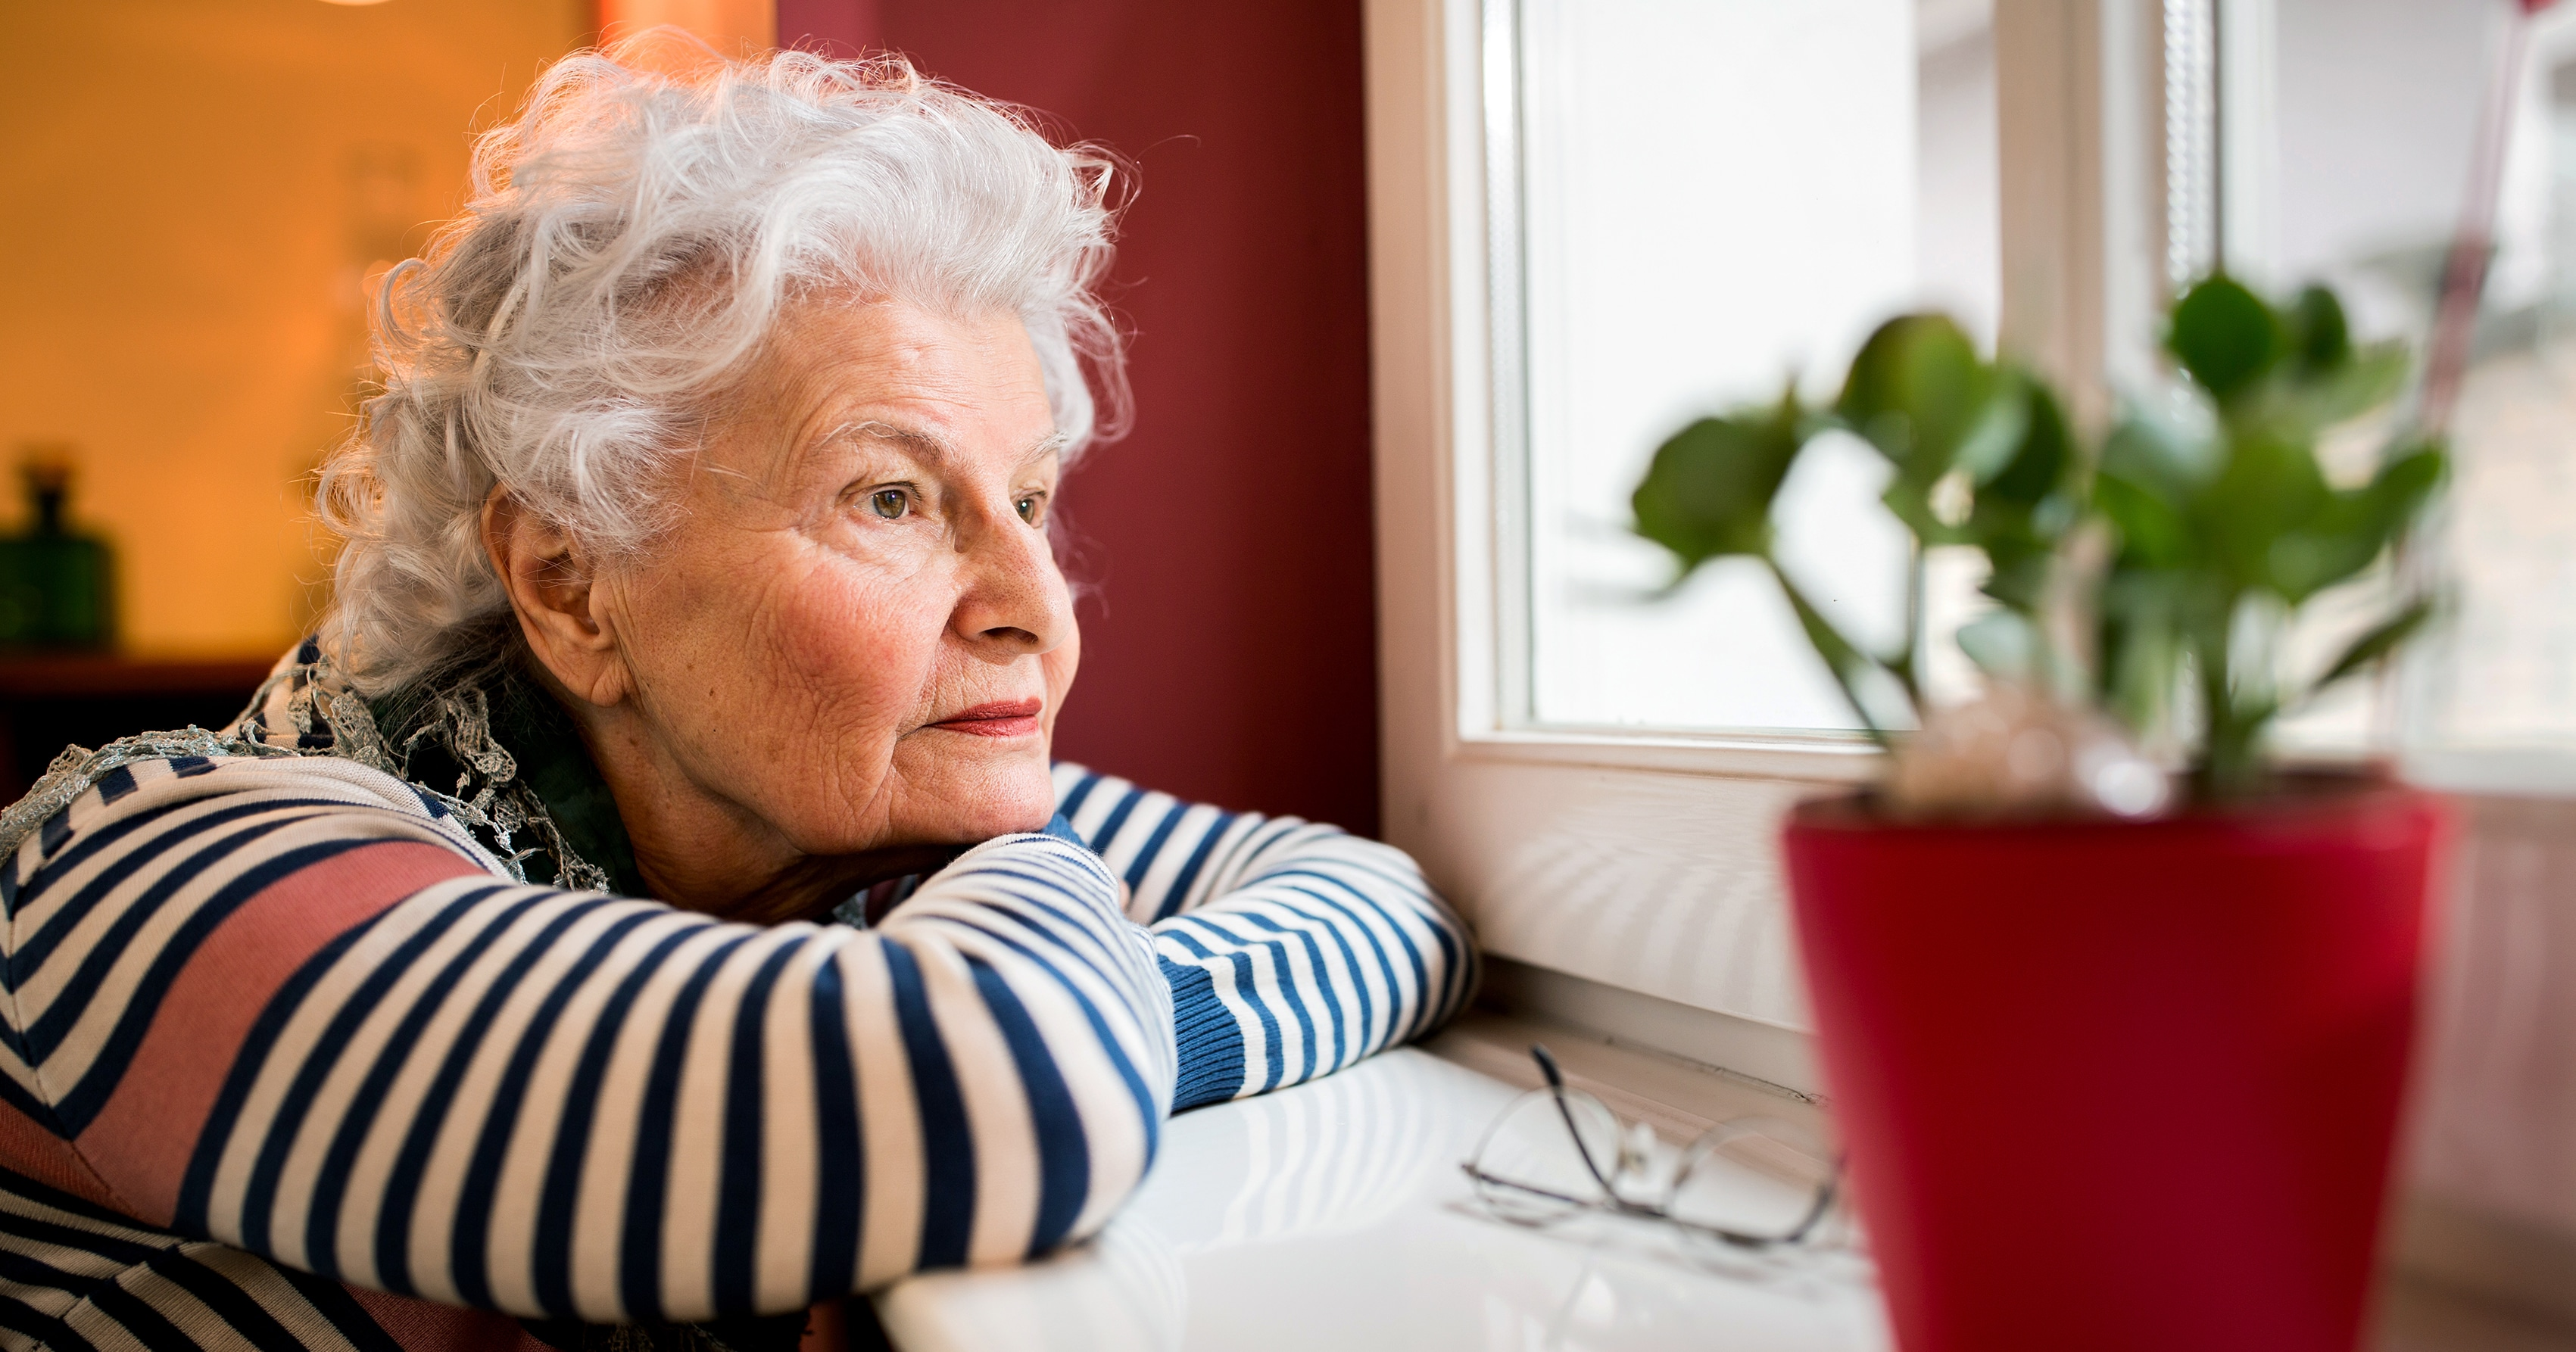 Loneliness, Are We Meeting Senior's Needs?